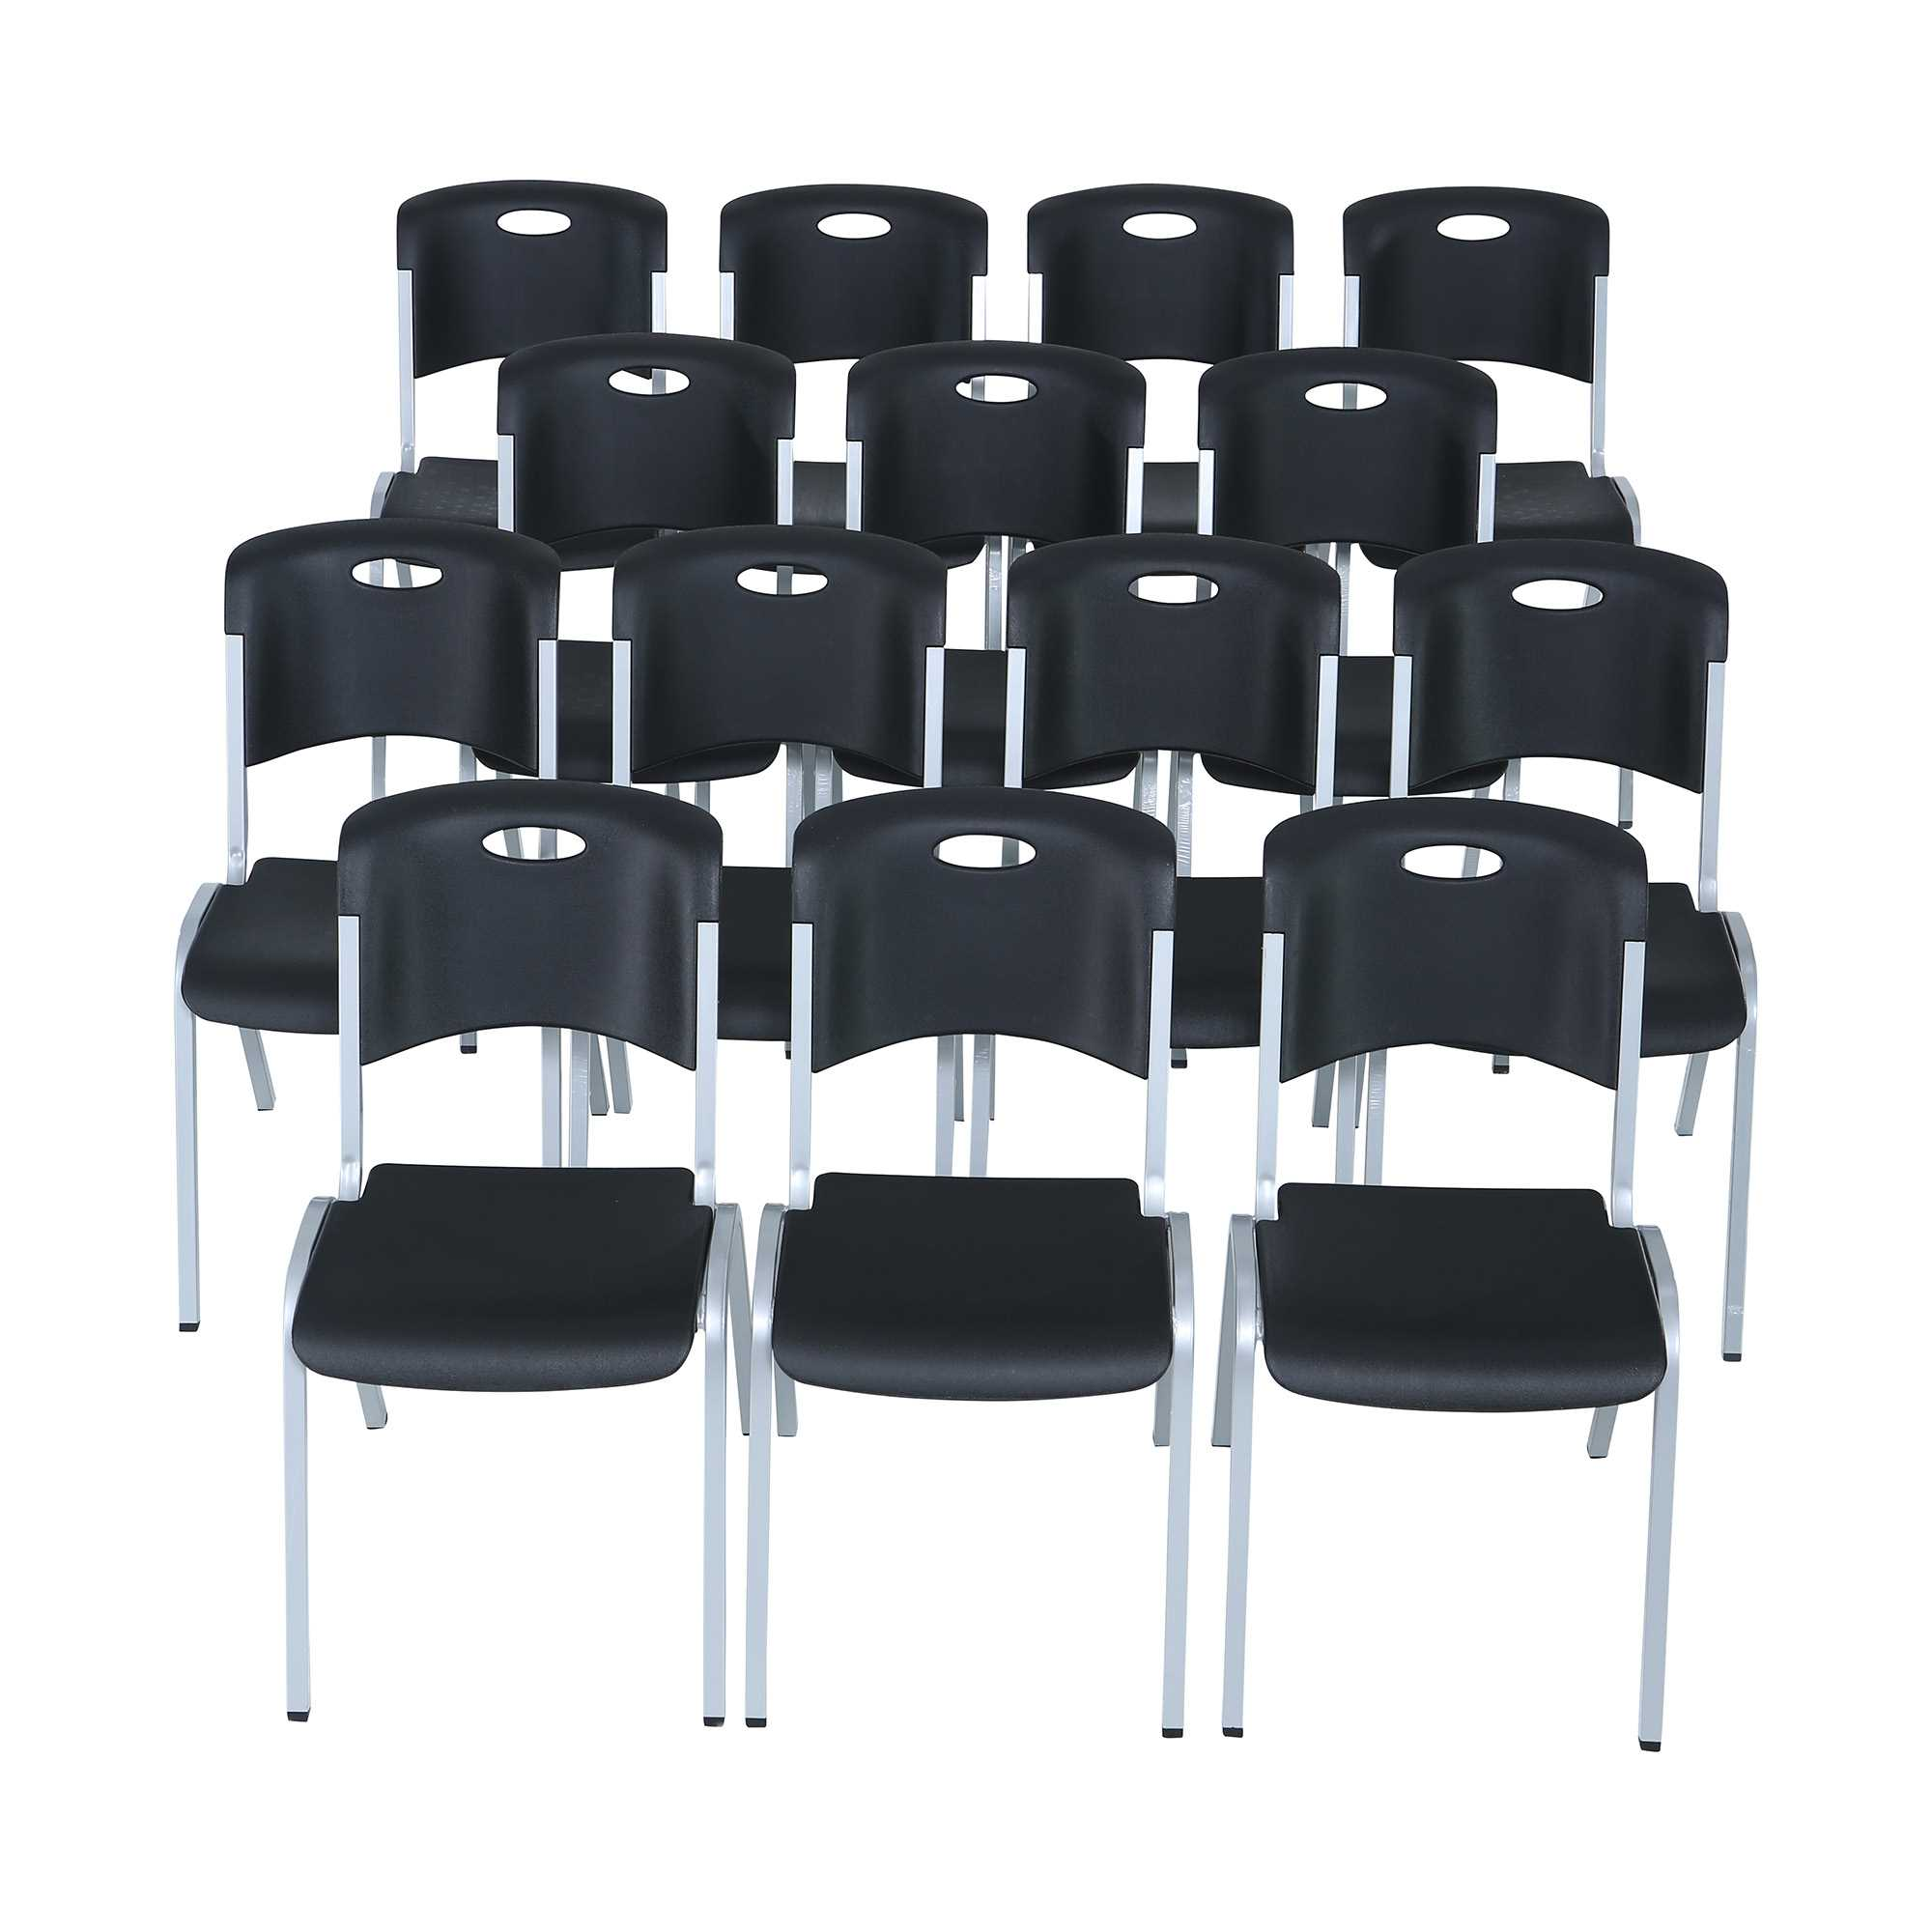 Lifetime Premium Black Stacking Chair